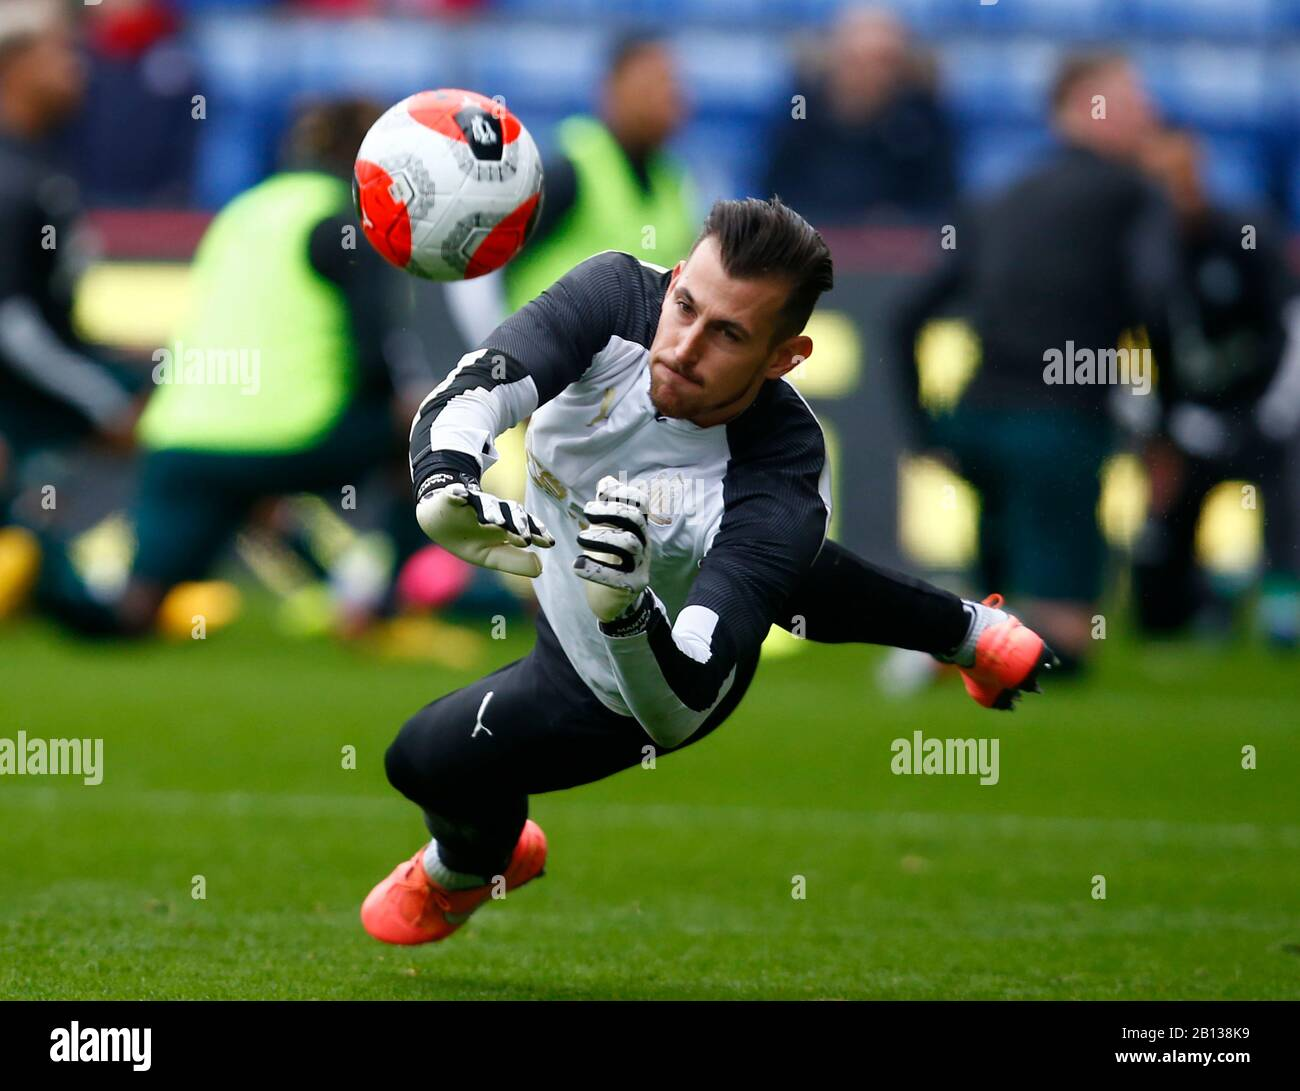 LONDON, UNITED KINGDOM. FEBRUARY 22 Newcastle United's Martin Dubravka during the pre-match warm-up during English Premier League between Crystal Palace and Newcastle United at Selhurst Park Stadium, London, England on 22 February 2020 Credit: Action Foto Sport/Alamy Live News Stock Photo